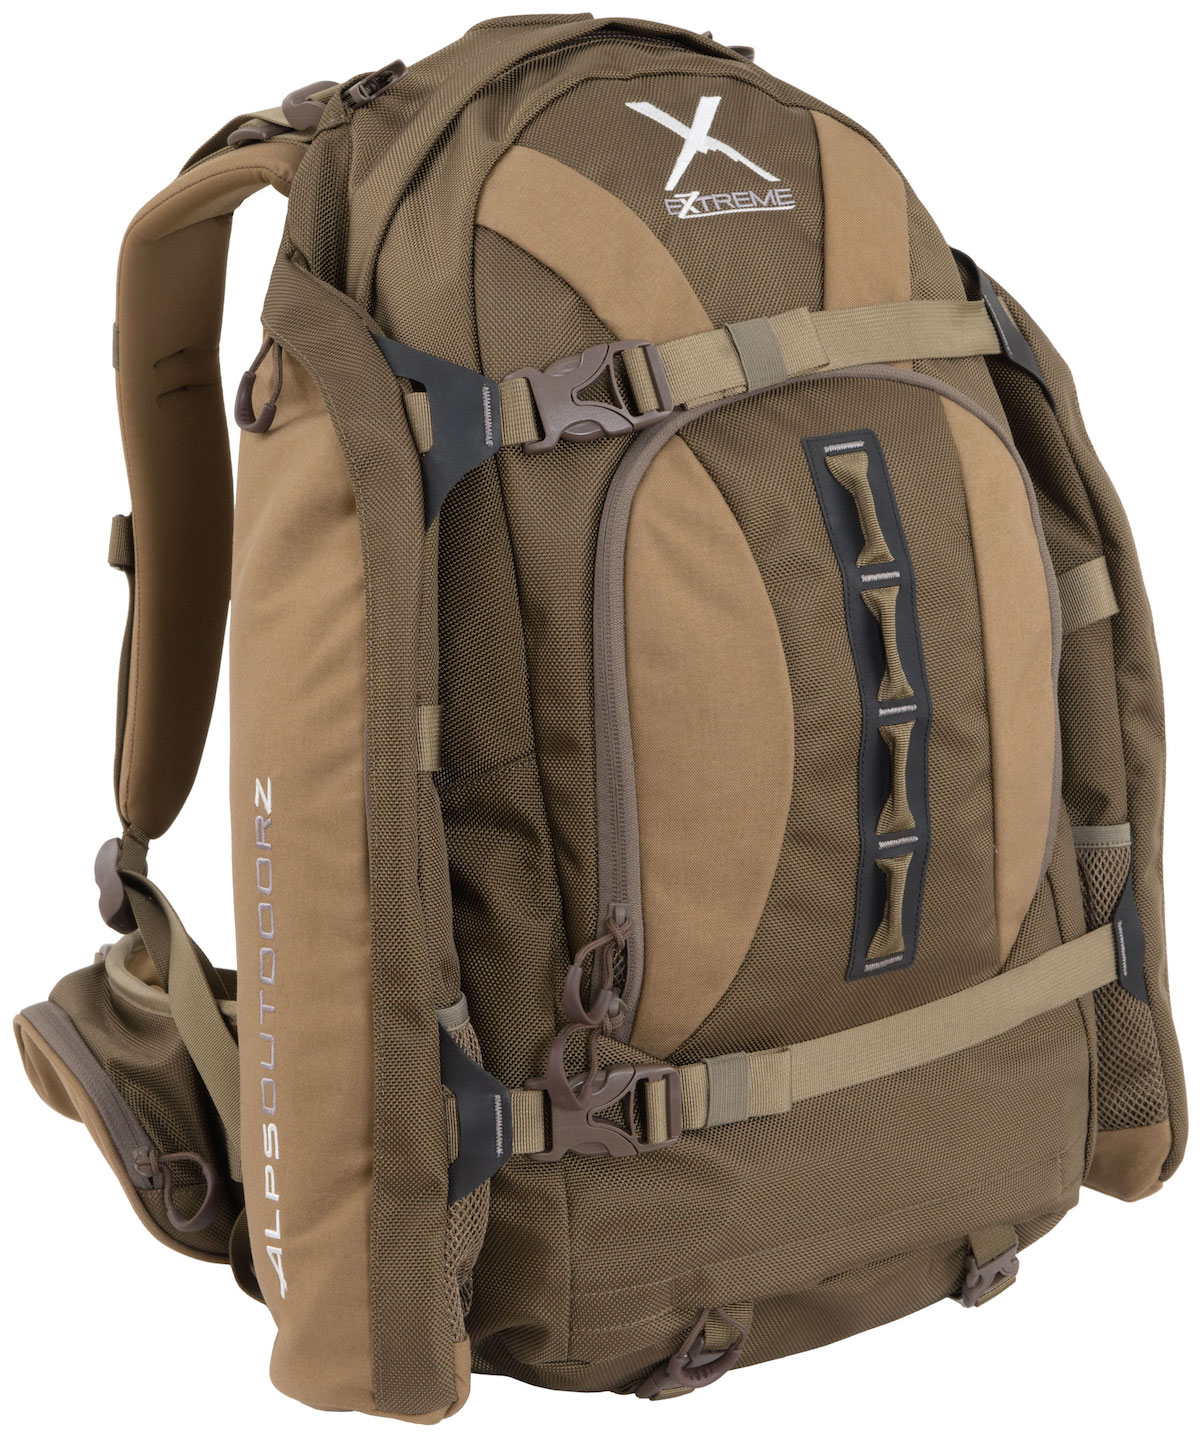 The Monarch X pack by ALPS OutdoorZ is designed to be functional yet comfortable for female hunters. (Photo: ALPS OutdoorZ)